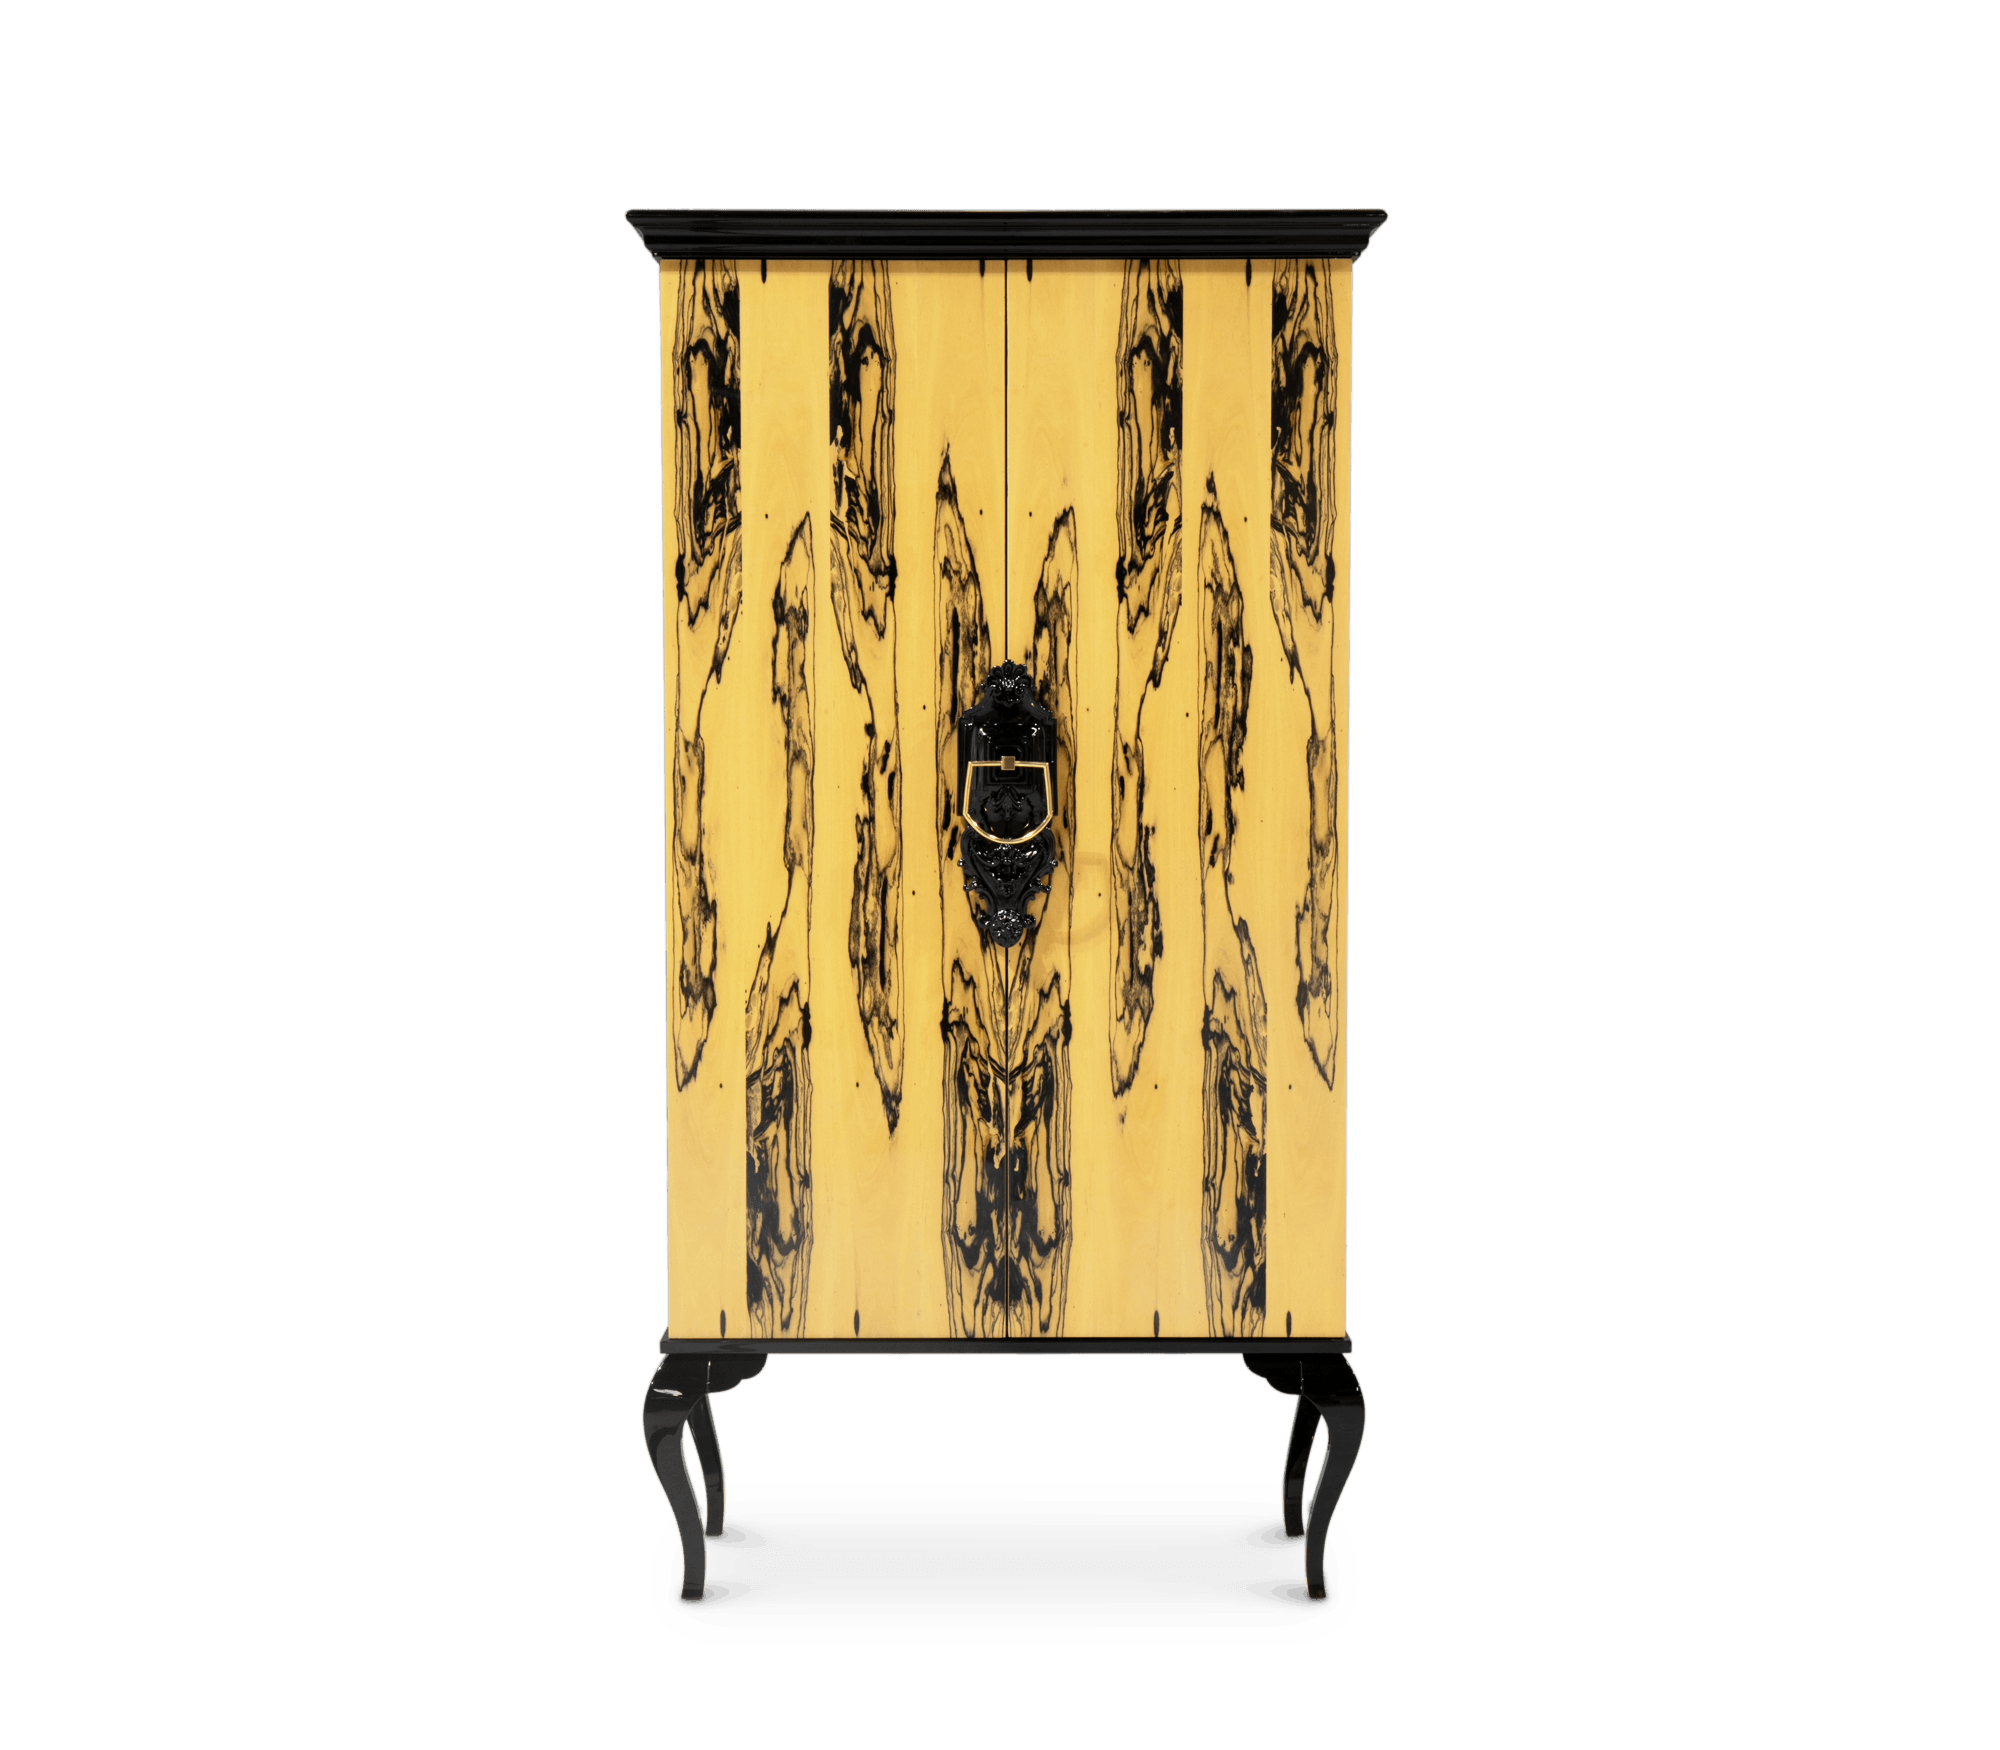 Guggenheim Ebony Royal Cabinet by Boca do Lobo